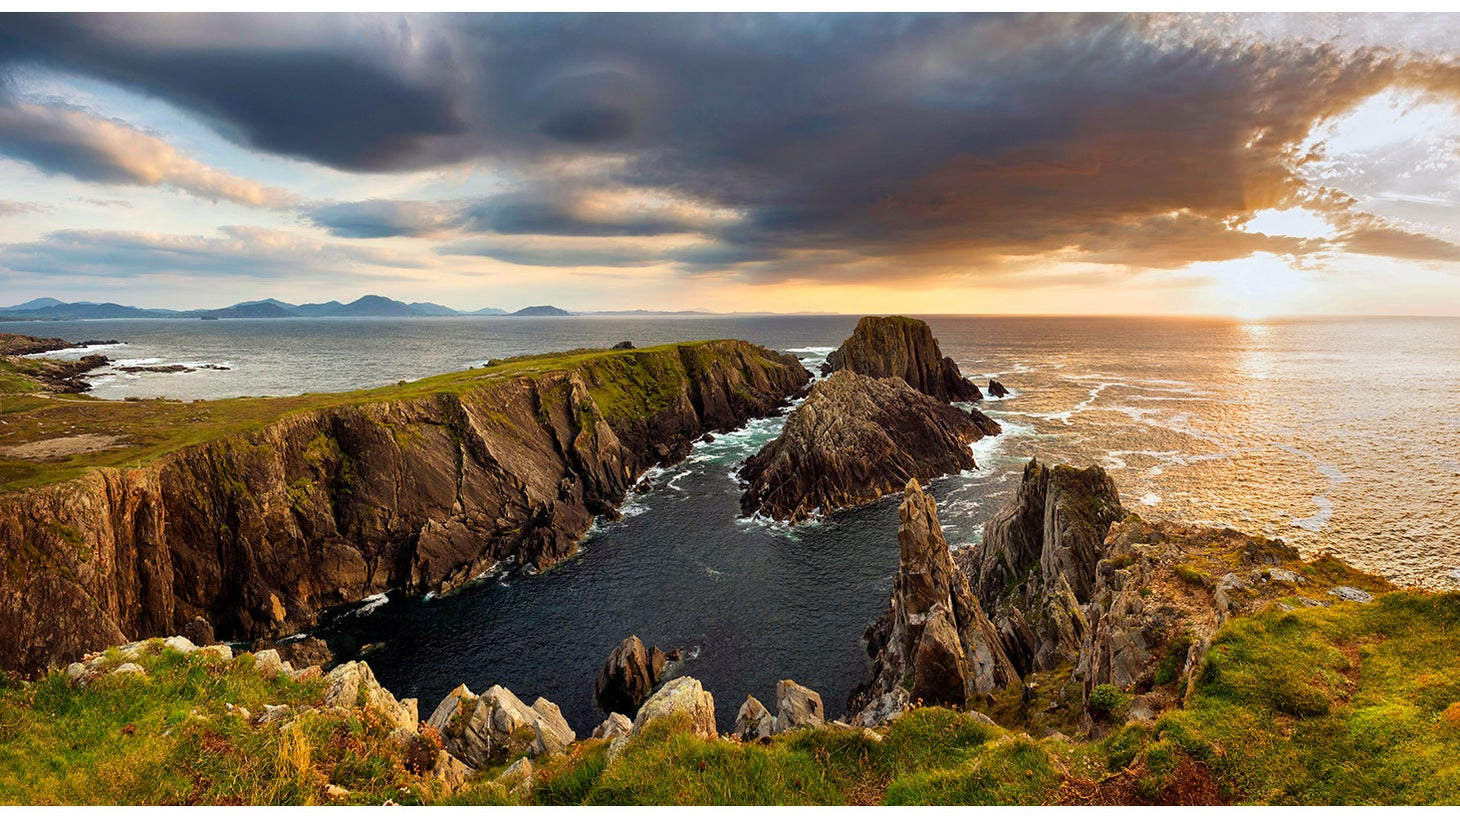 Visit Ireland's mostnortherlypoint,MalinHead in Donegal.